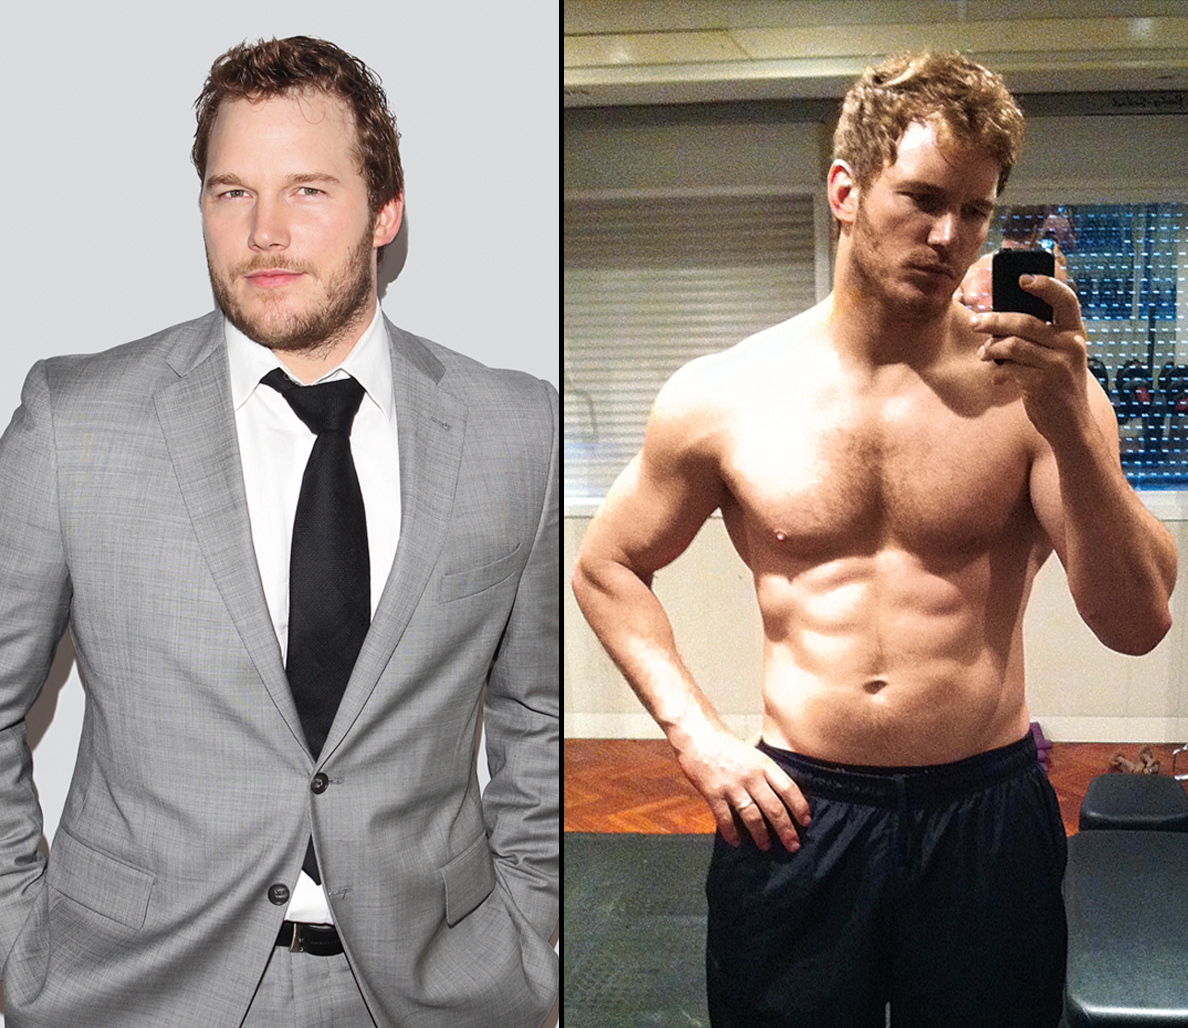 The 19 Most Extreme and Impressive Celebrity Fitness